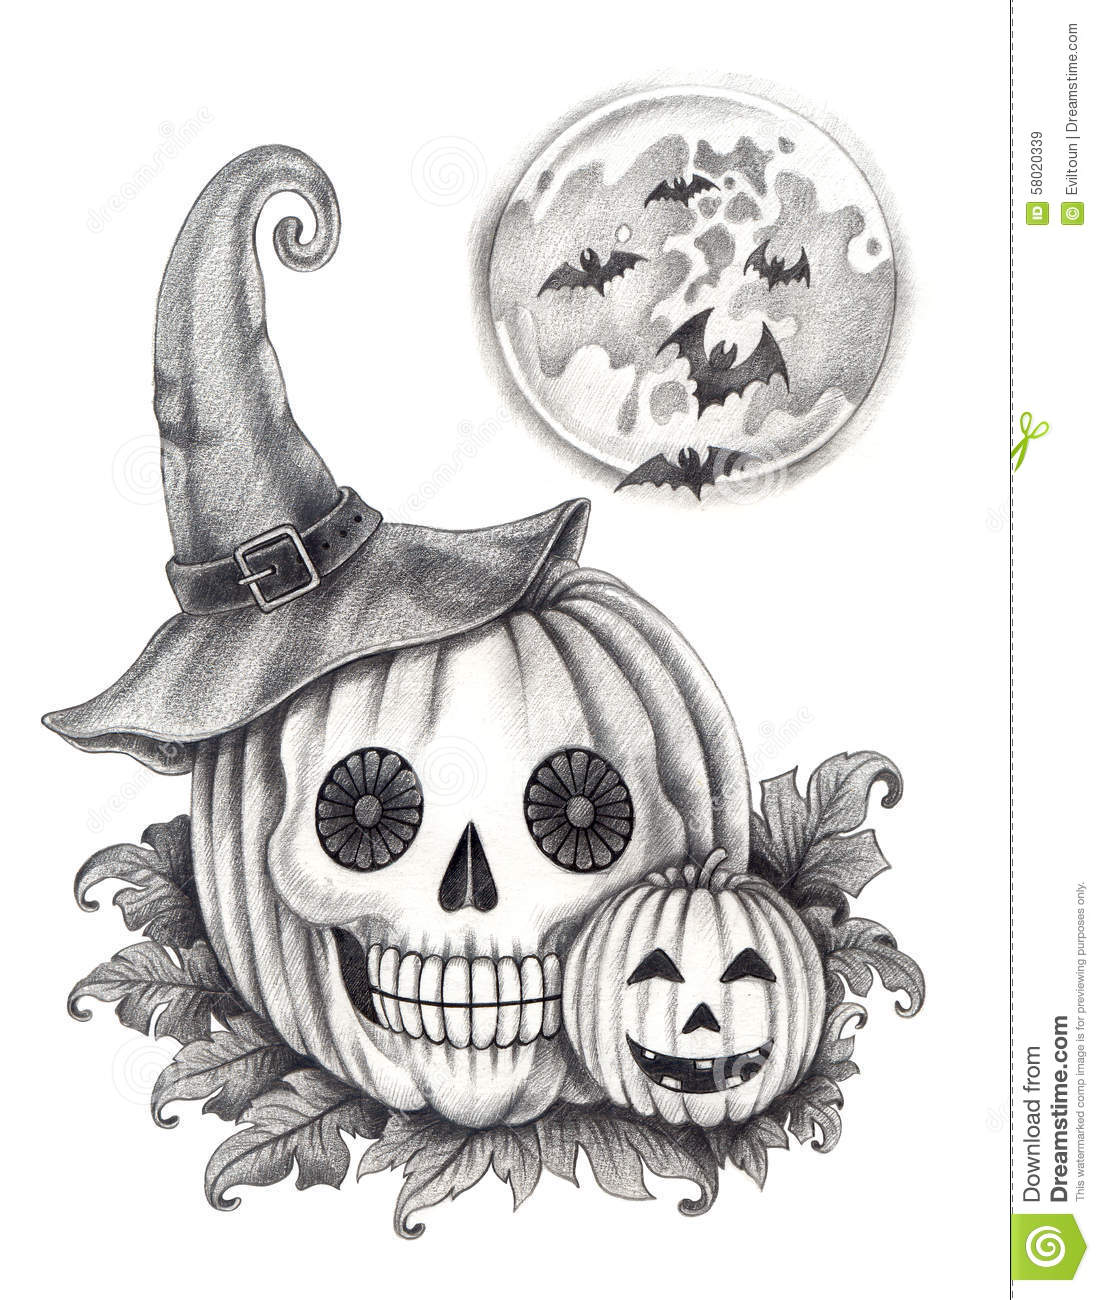 Halloween Pumpkin Drawing Picture.Art Skull Pumpkin Halloween Day Stock Illustration Illustration